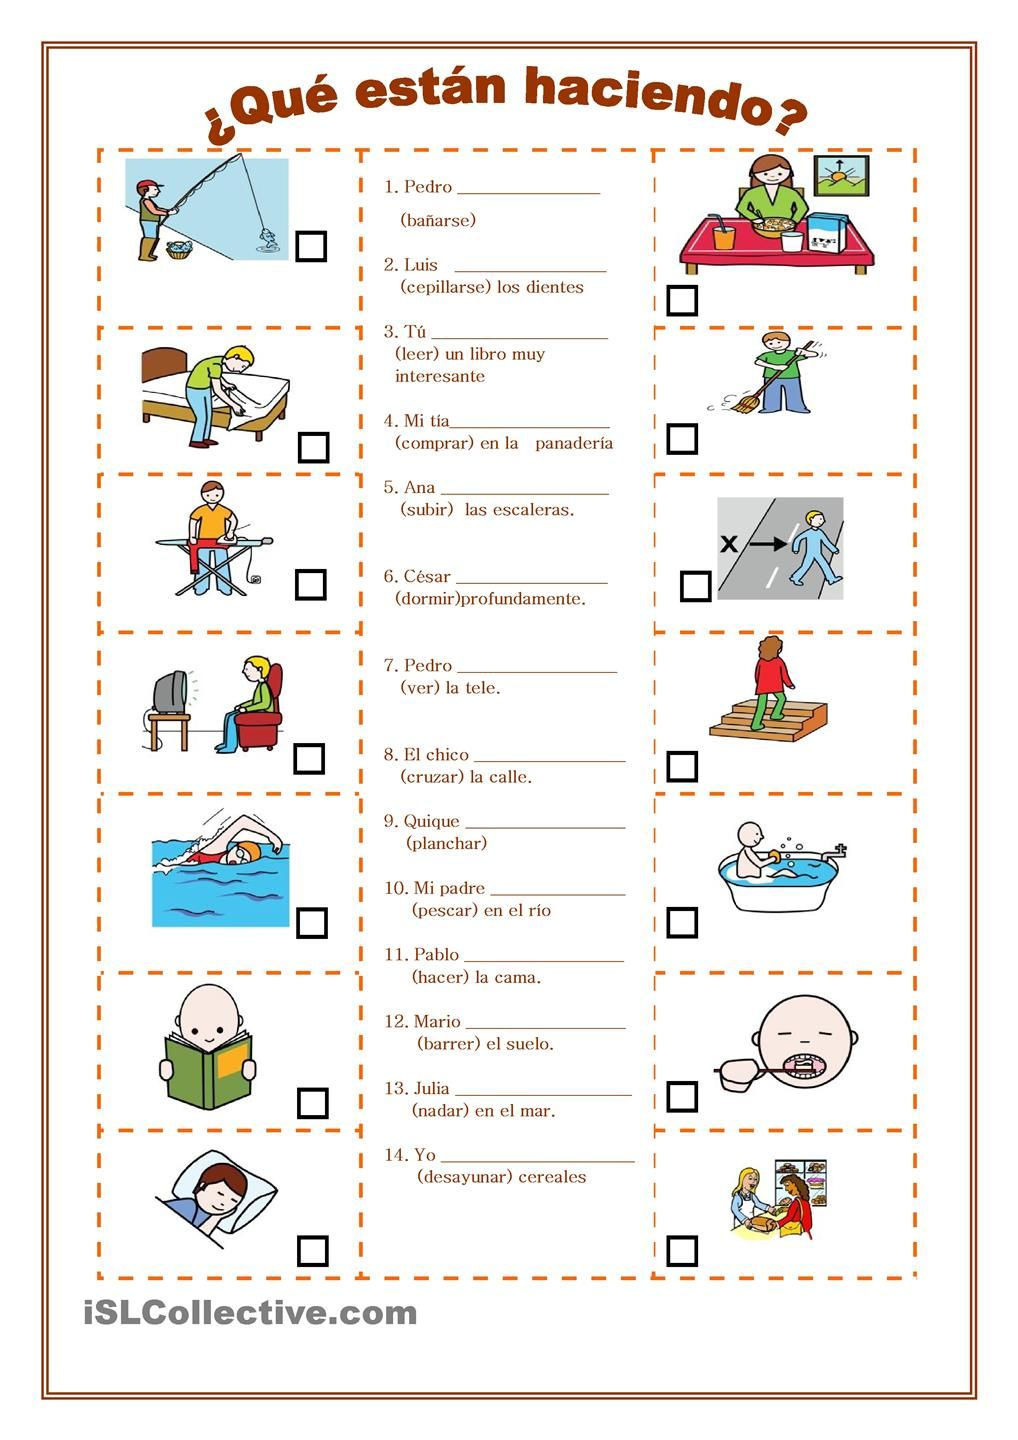 Workbooks weather expressions in spanish worksheets : ¿Qué están haciendo? 3 | Verbos | Pinterest | Spanish, Teaching ...